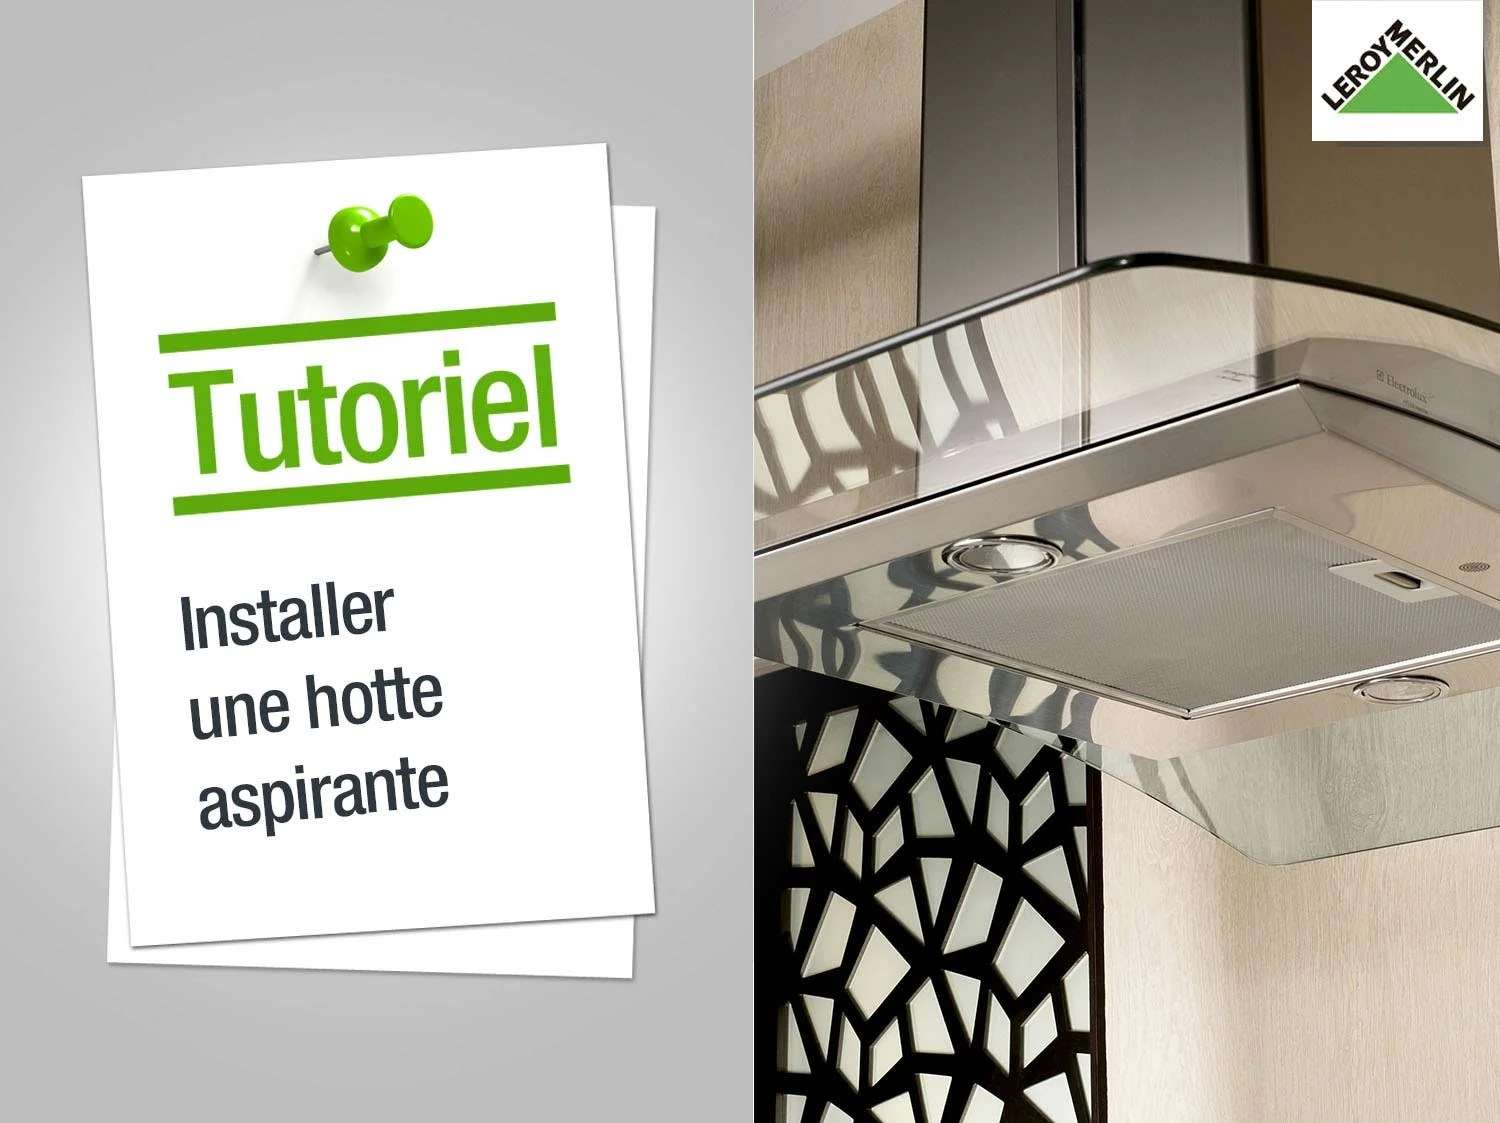 Raccordement Hotte Aspirante Cuisine Comment Installer Une Hotte Aspirante Encastrable